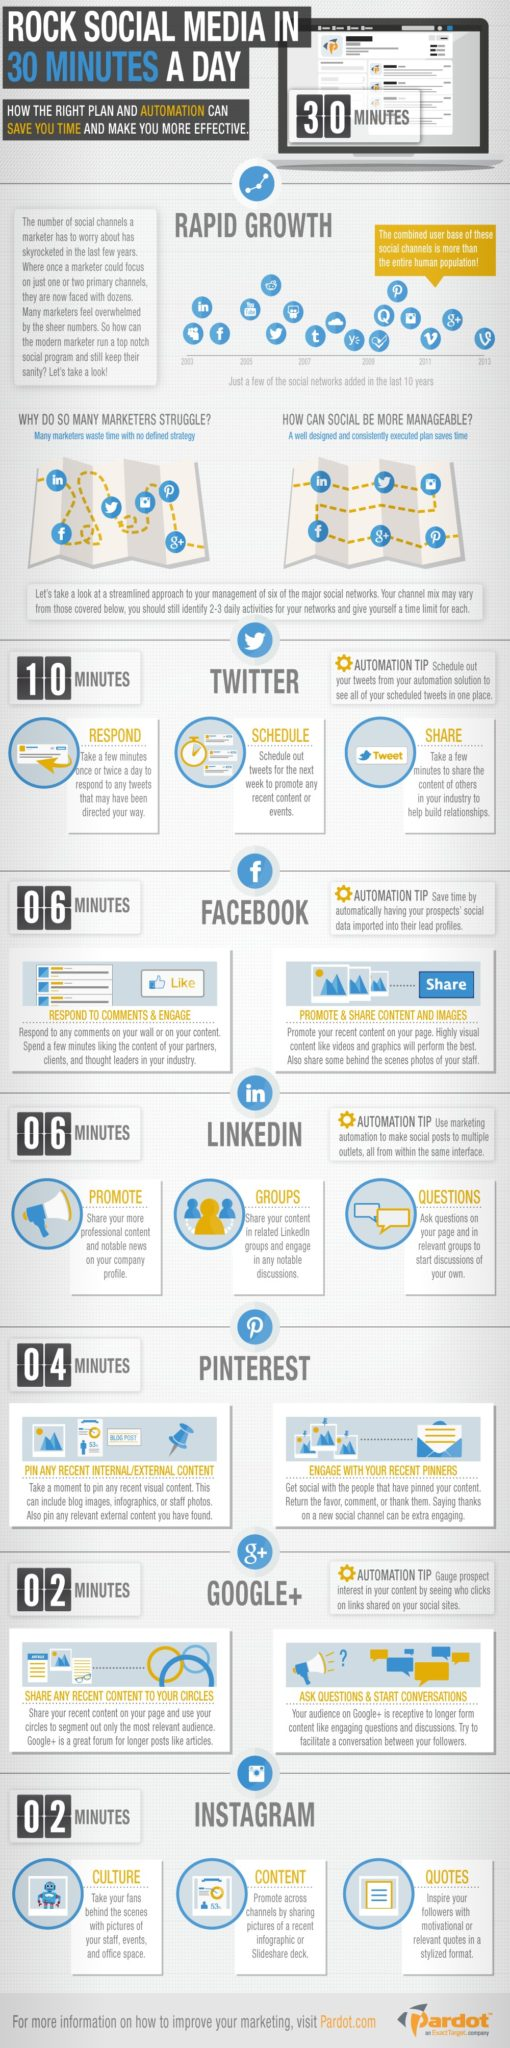 30-minute-social-media-management-strategy - how to rock social media management